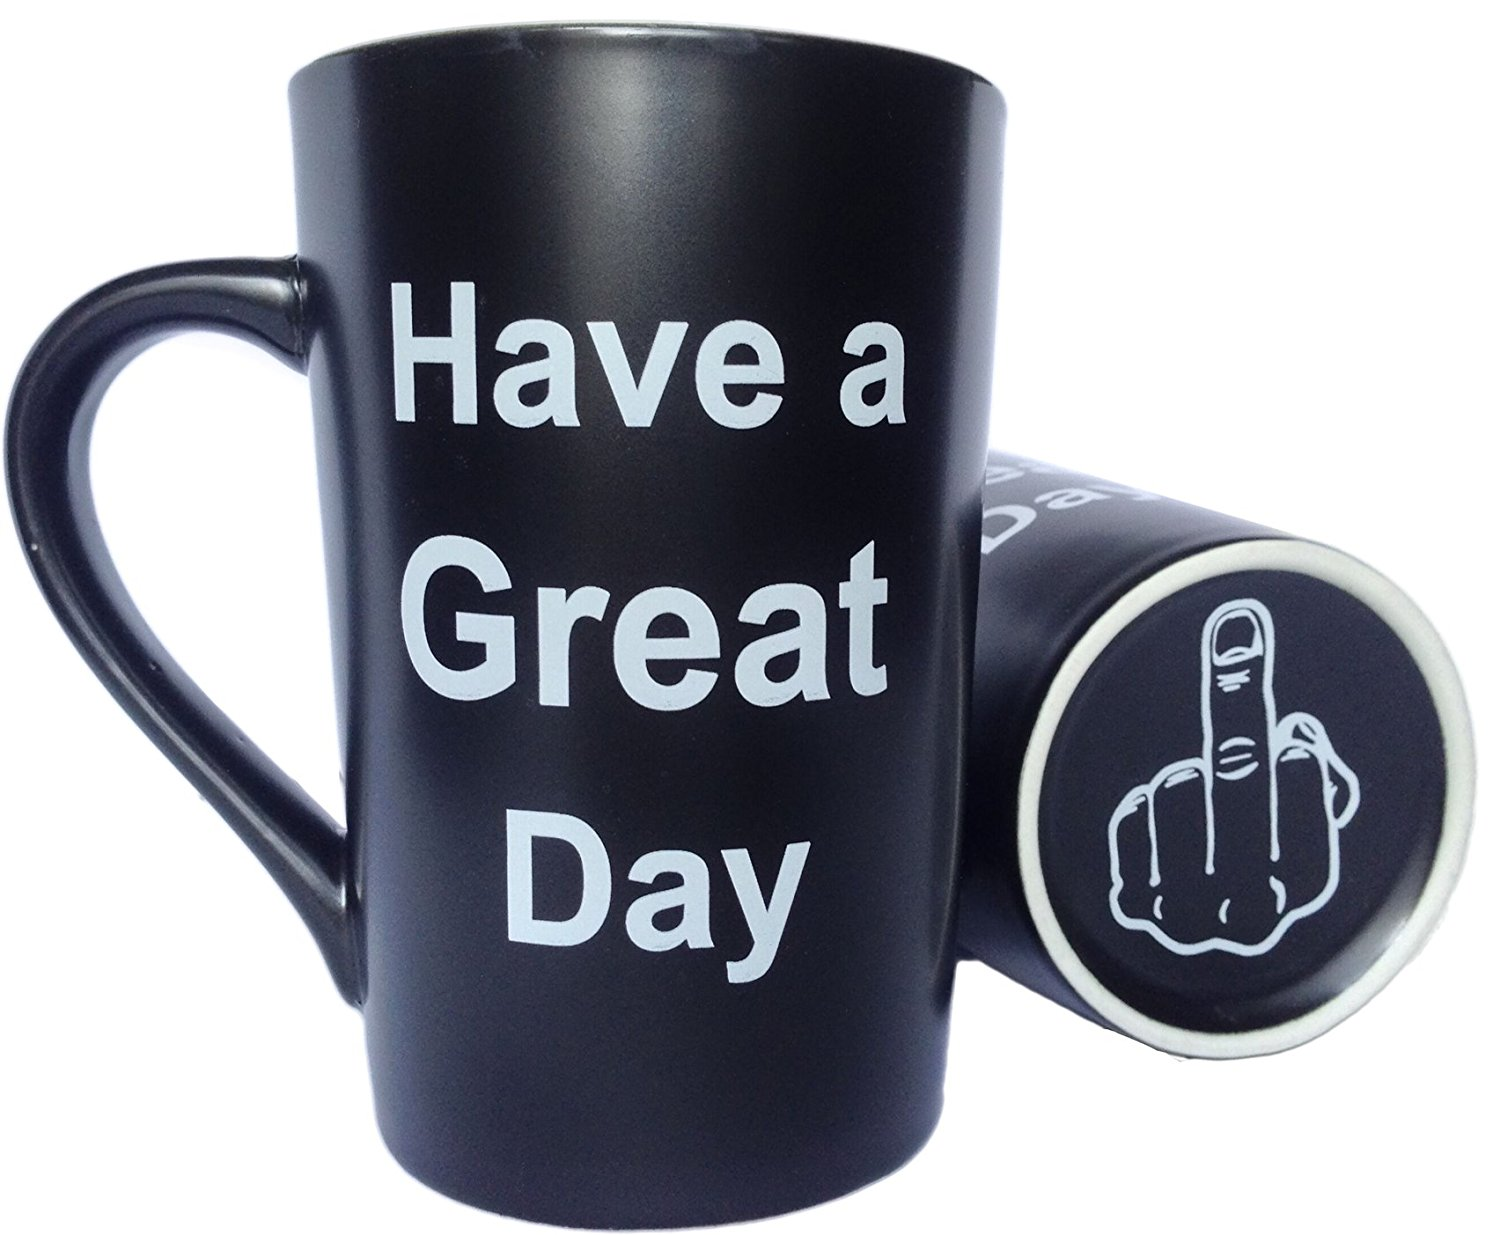 Have great day mug